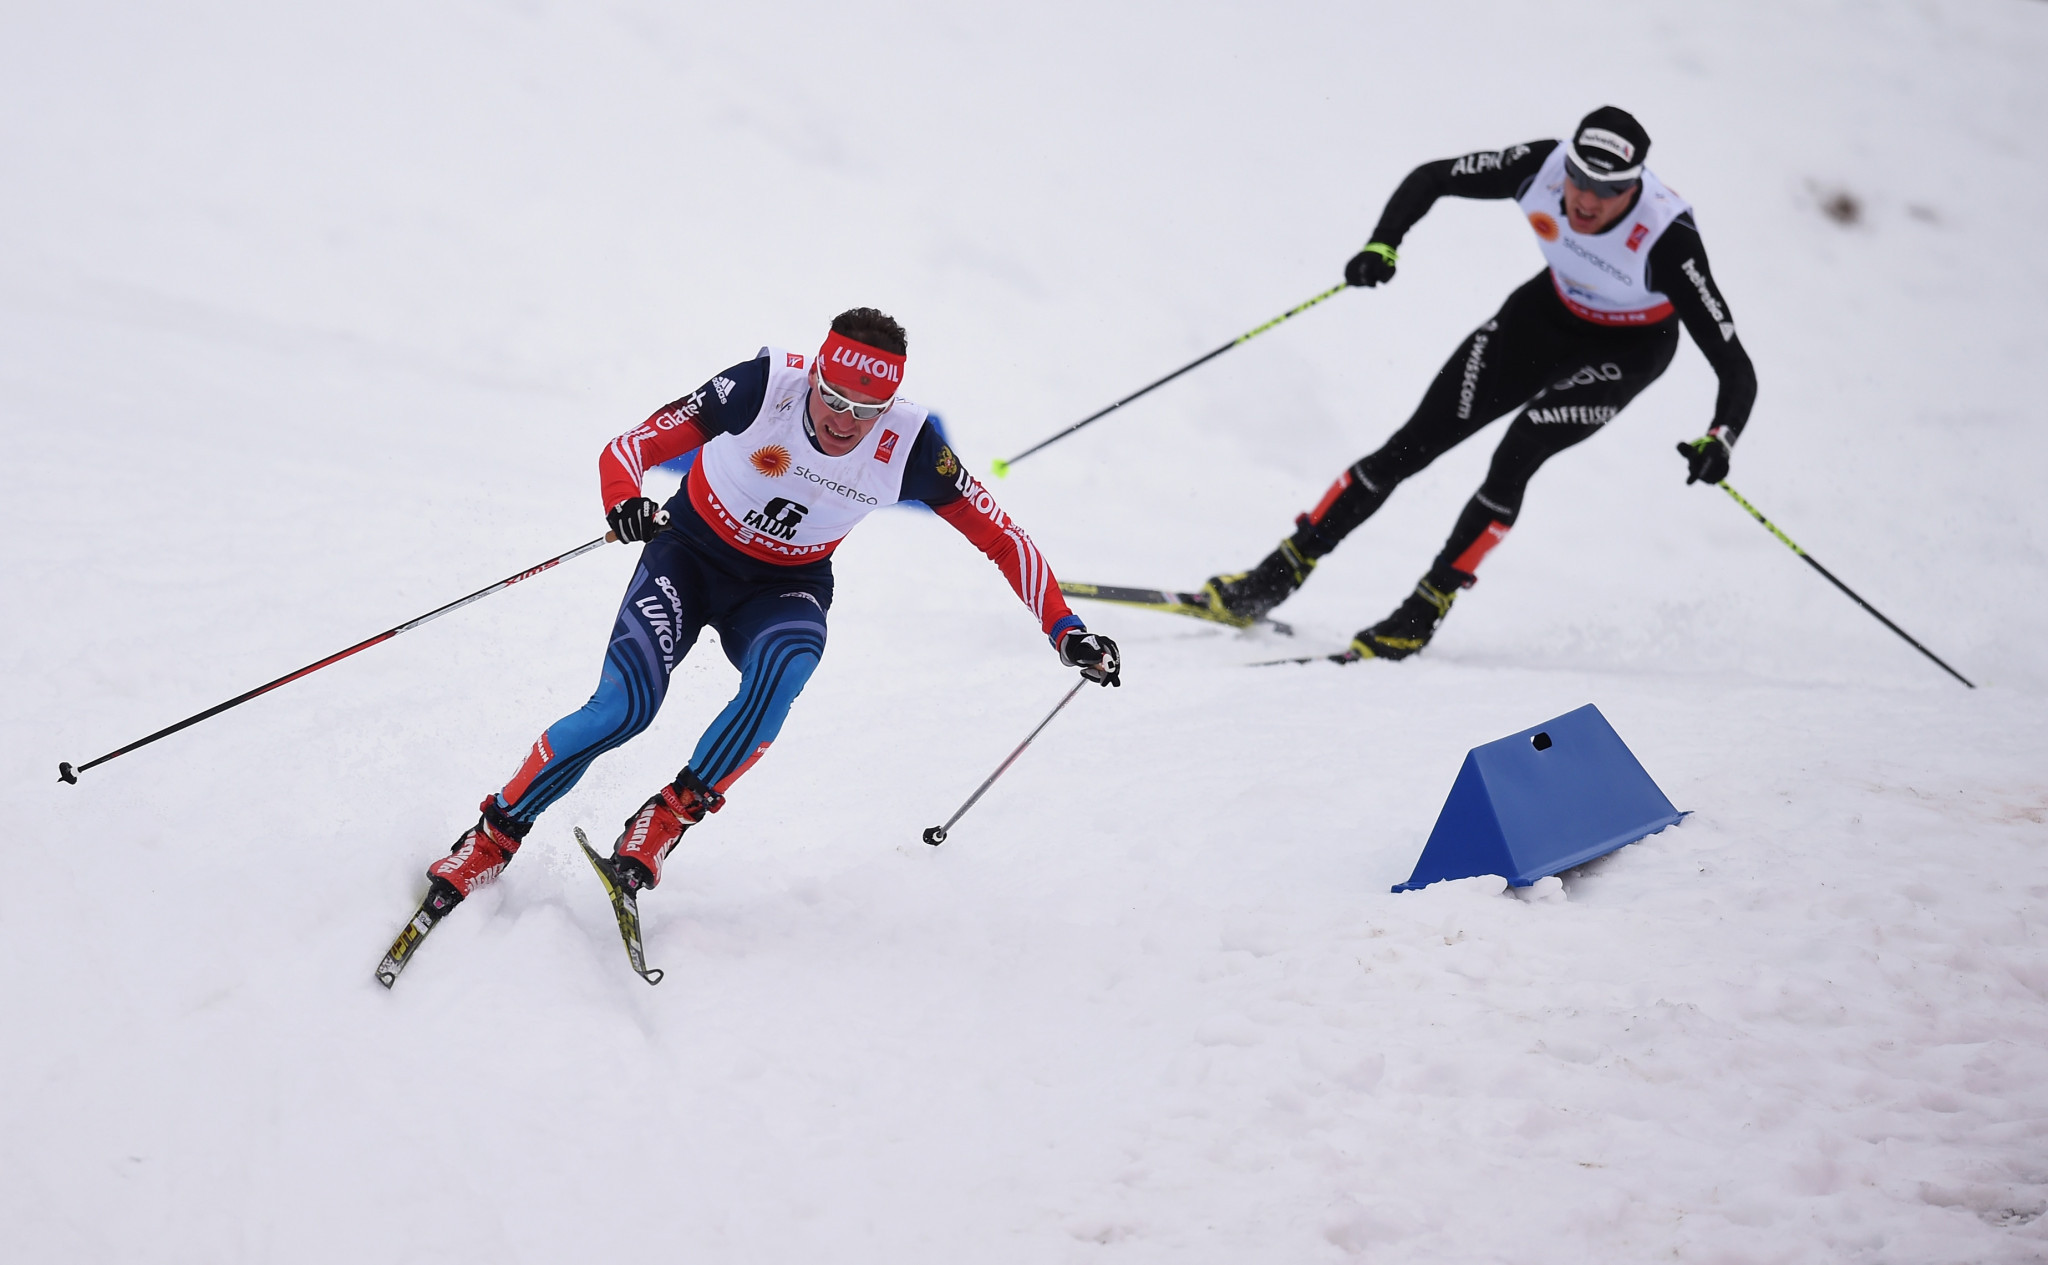 A total of 11 cross-country skiers, including Maxim Vylegzhanin, left, have been sanctioned by the IOC ©Getty Images